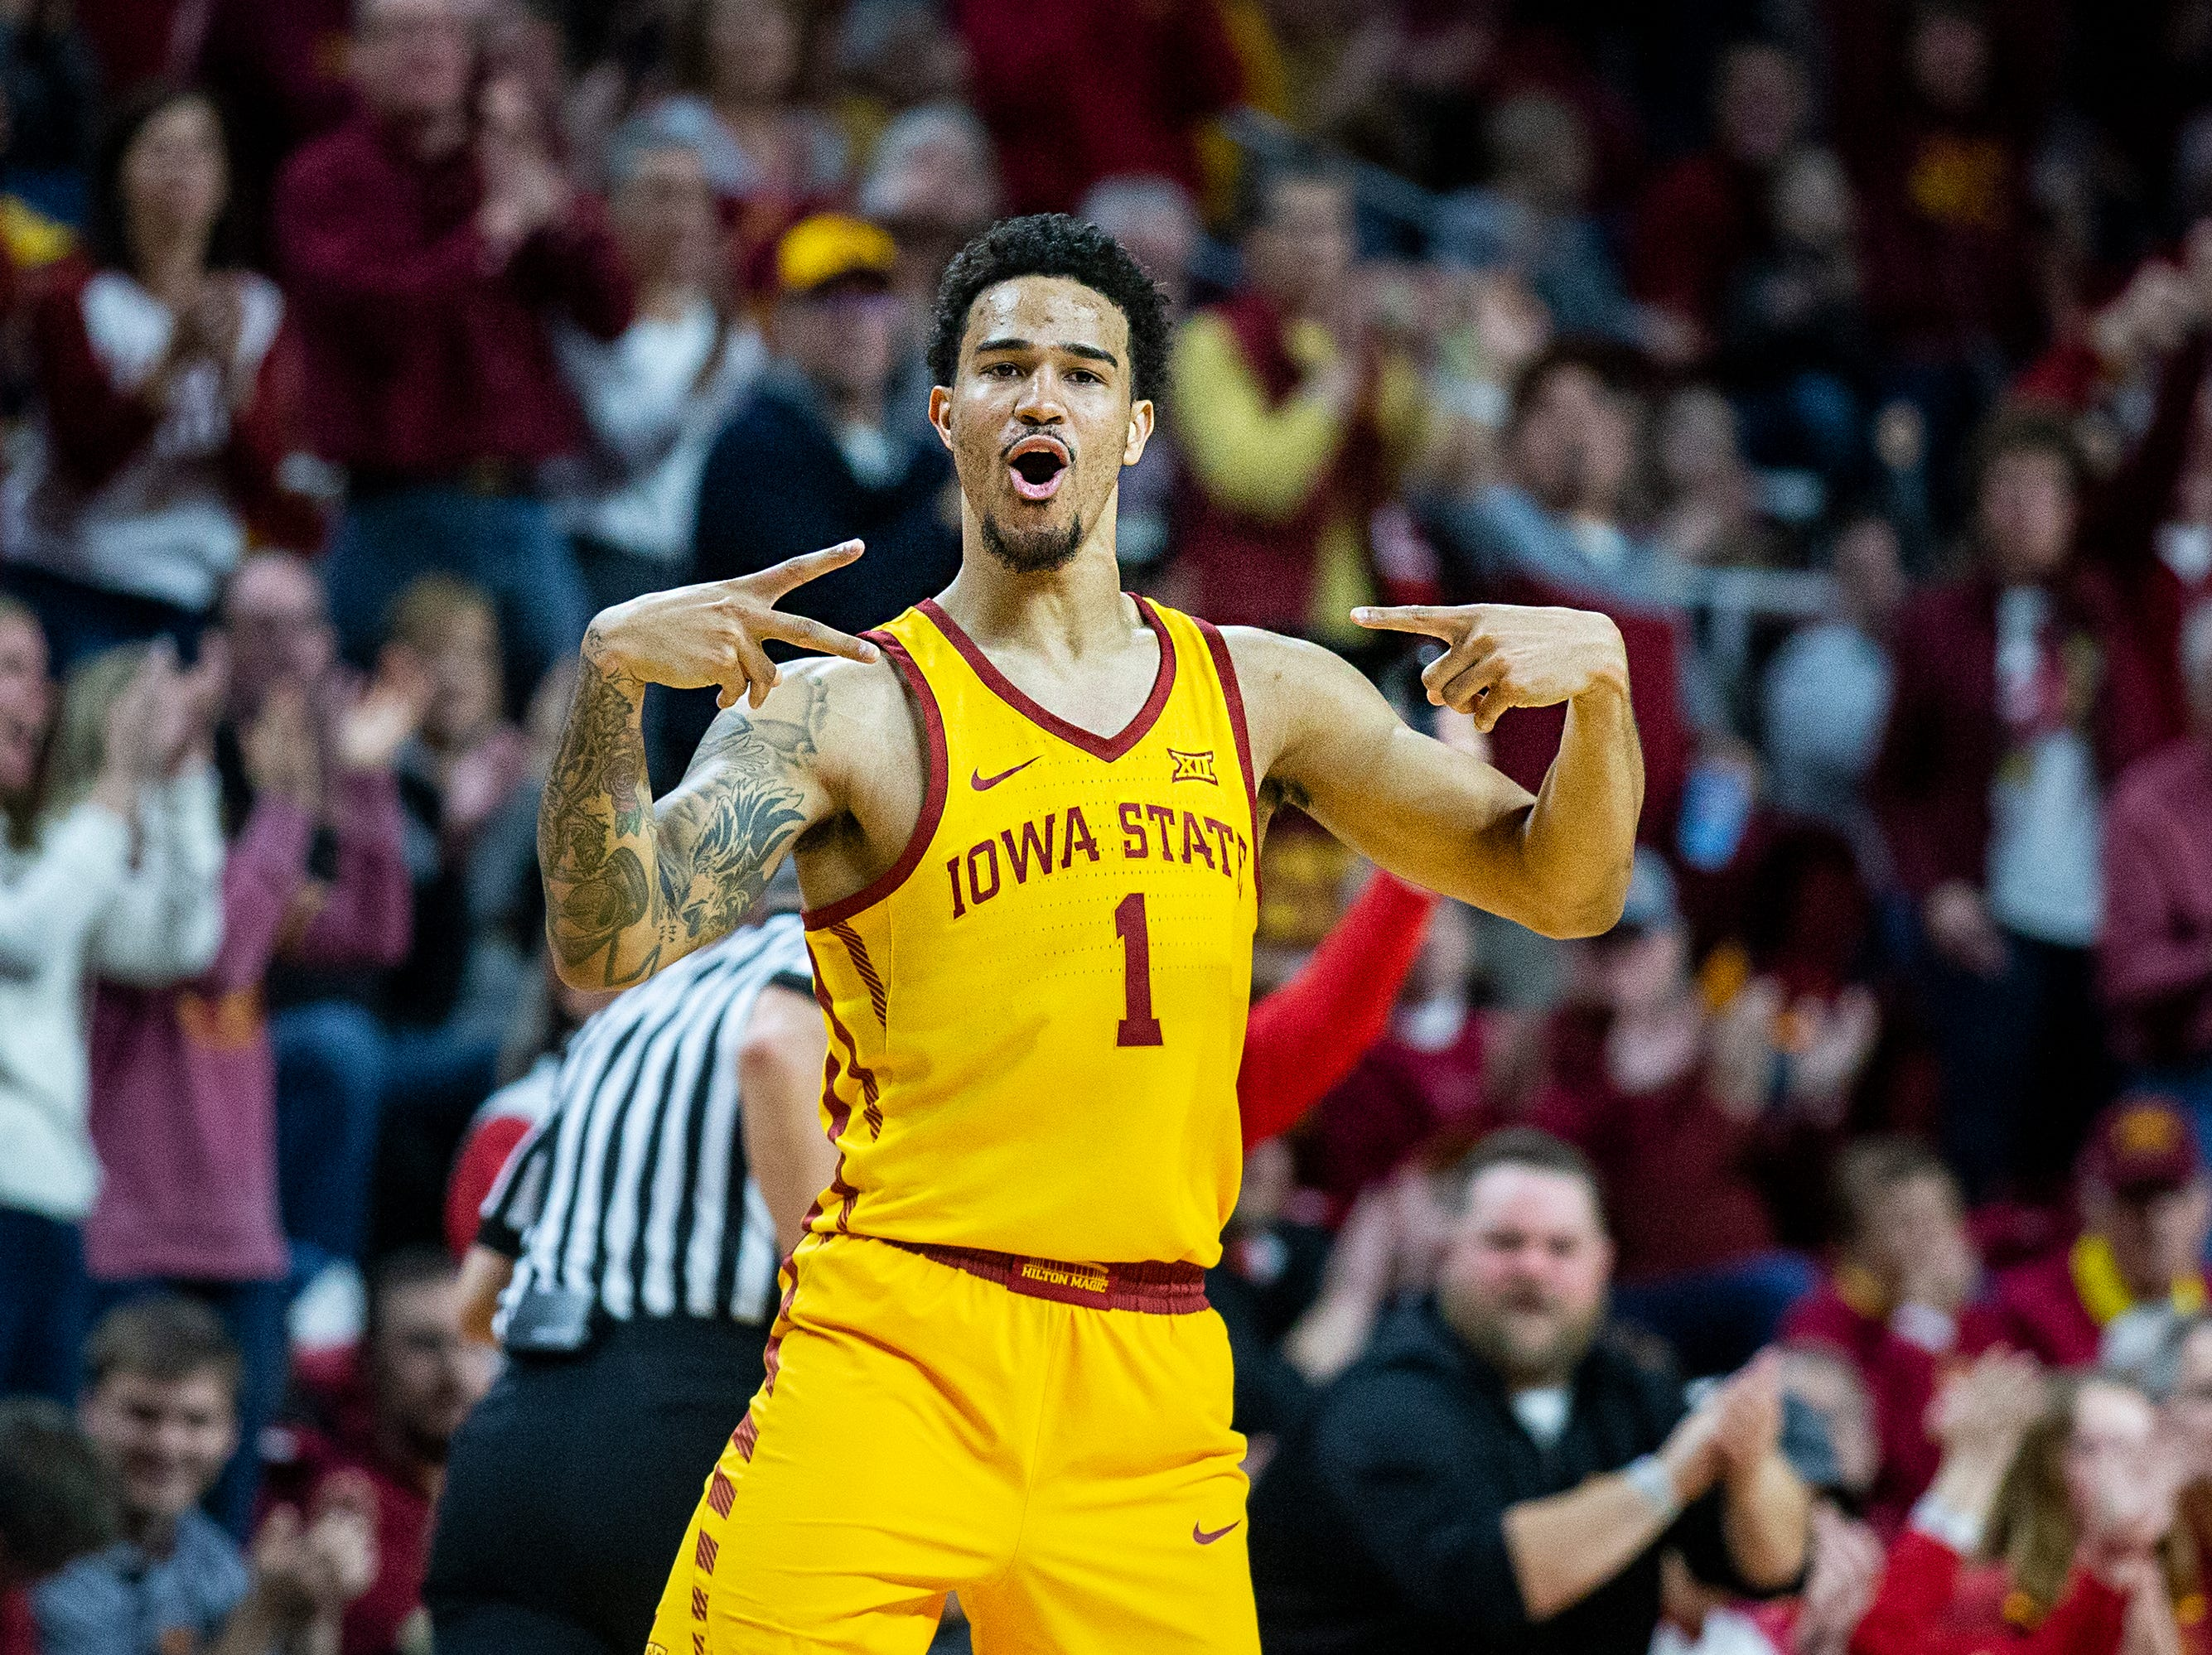 Iowa State's Nick Weiler-Babb celebrates after making a three and giving the Cyclones the lead during the Iowa State men's basketball game against Kansas State on Saturday, Jan. 12, 2019, in Hilton Coliseum. The Cyclones lost to KSU by one point, 58-57.